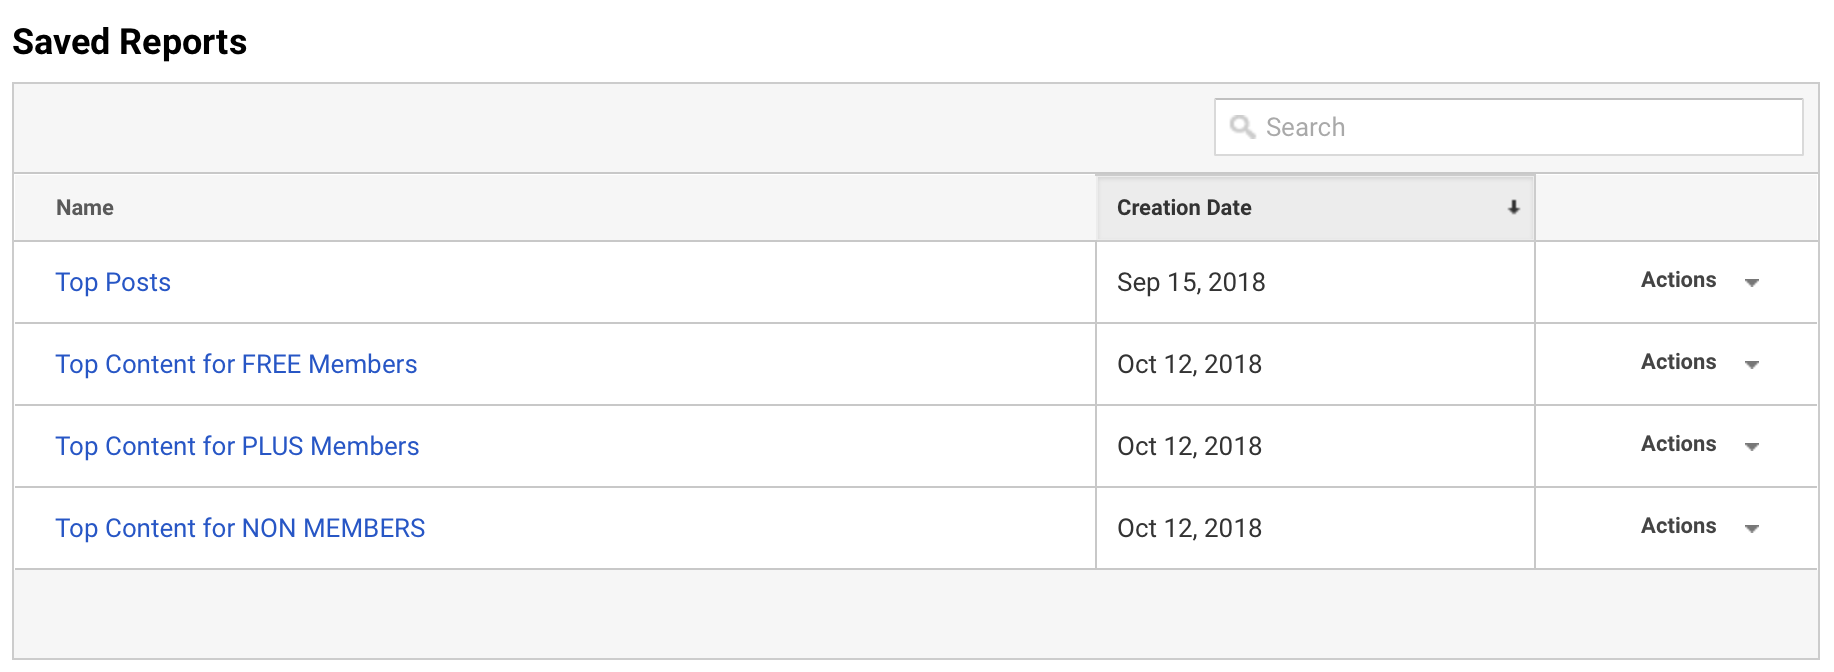 Saved reports in Google Analytics